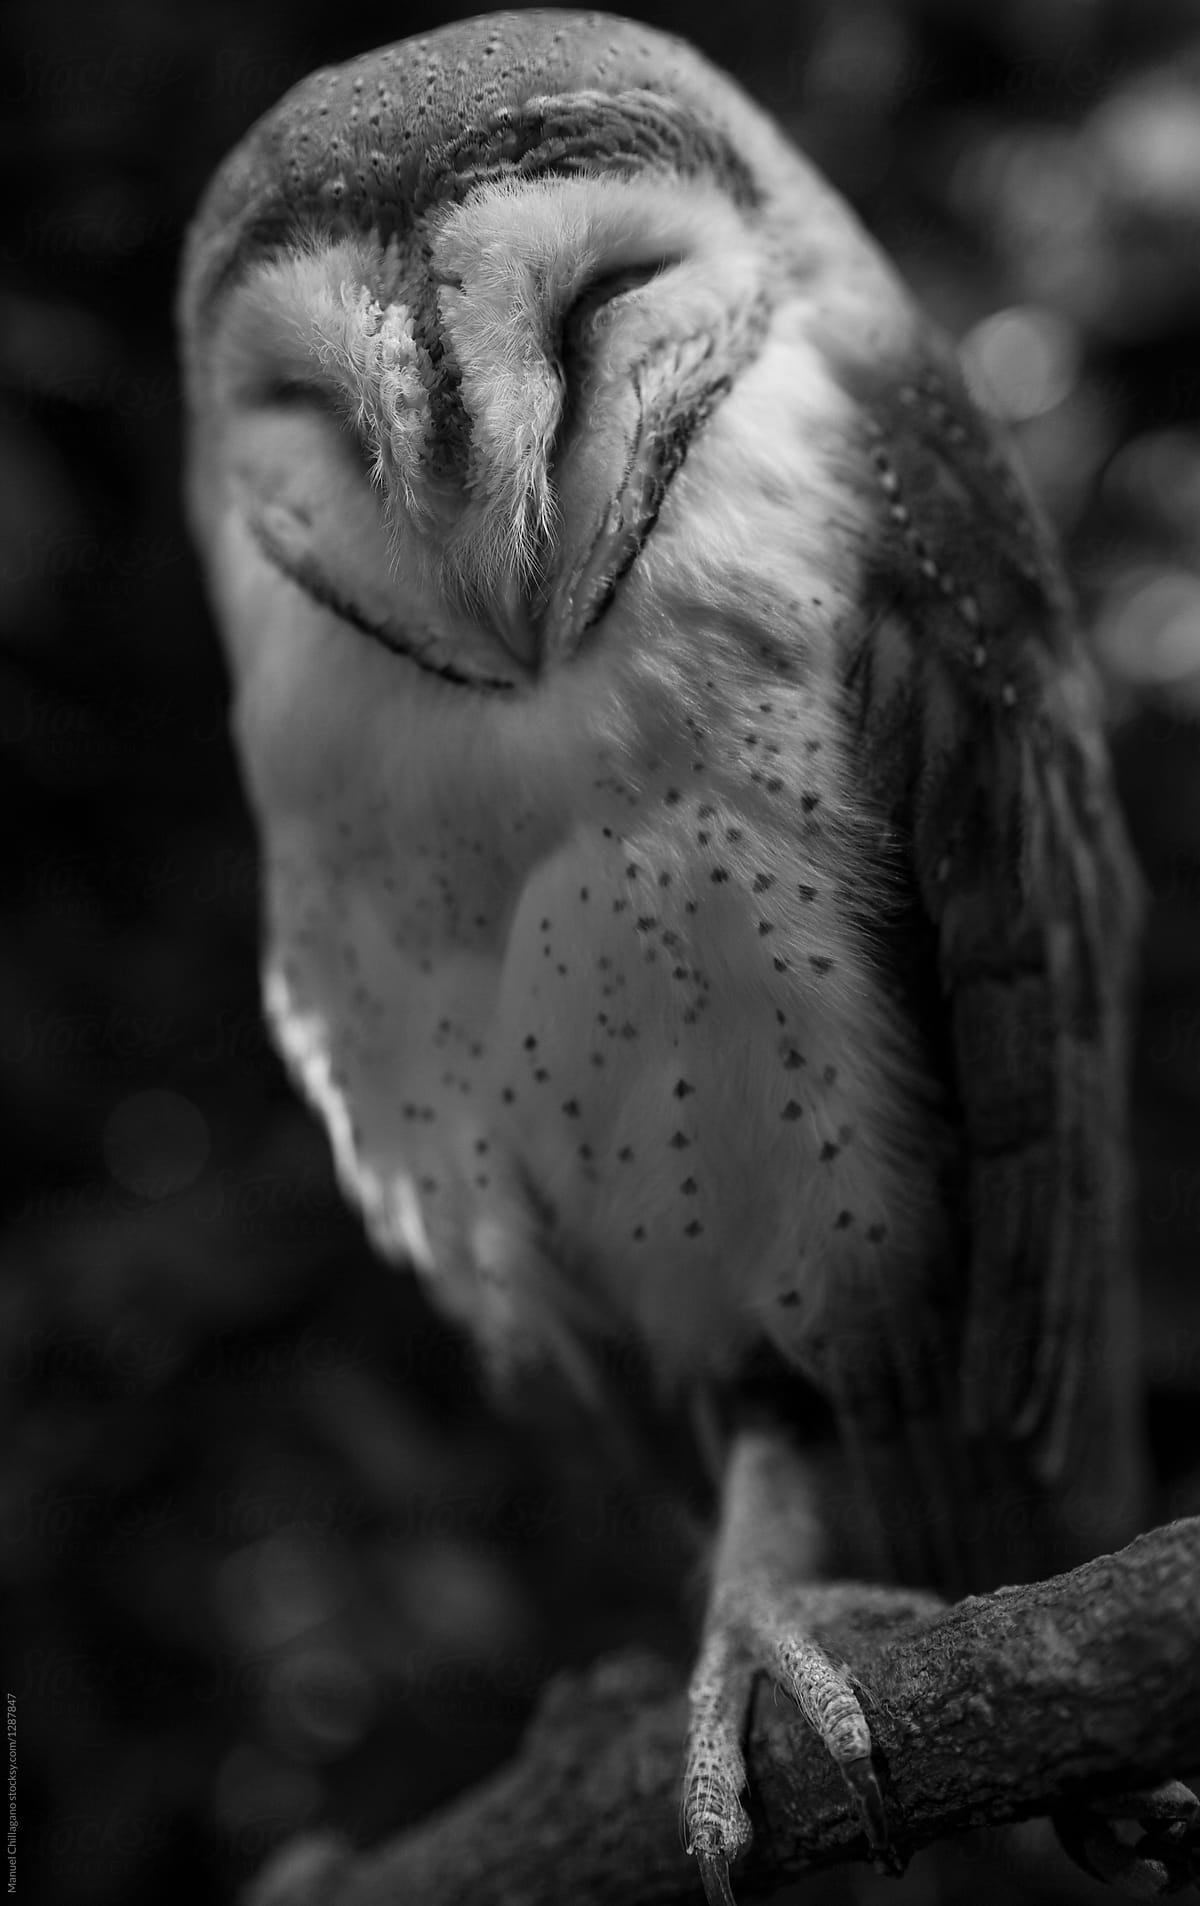 Black and white portrait of a barn owl